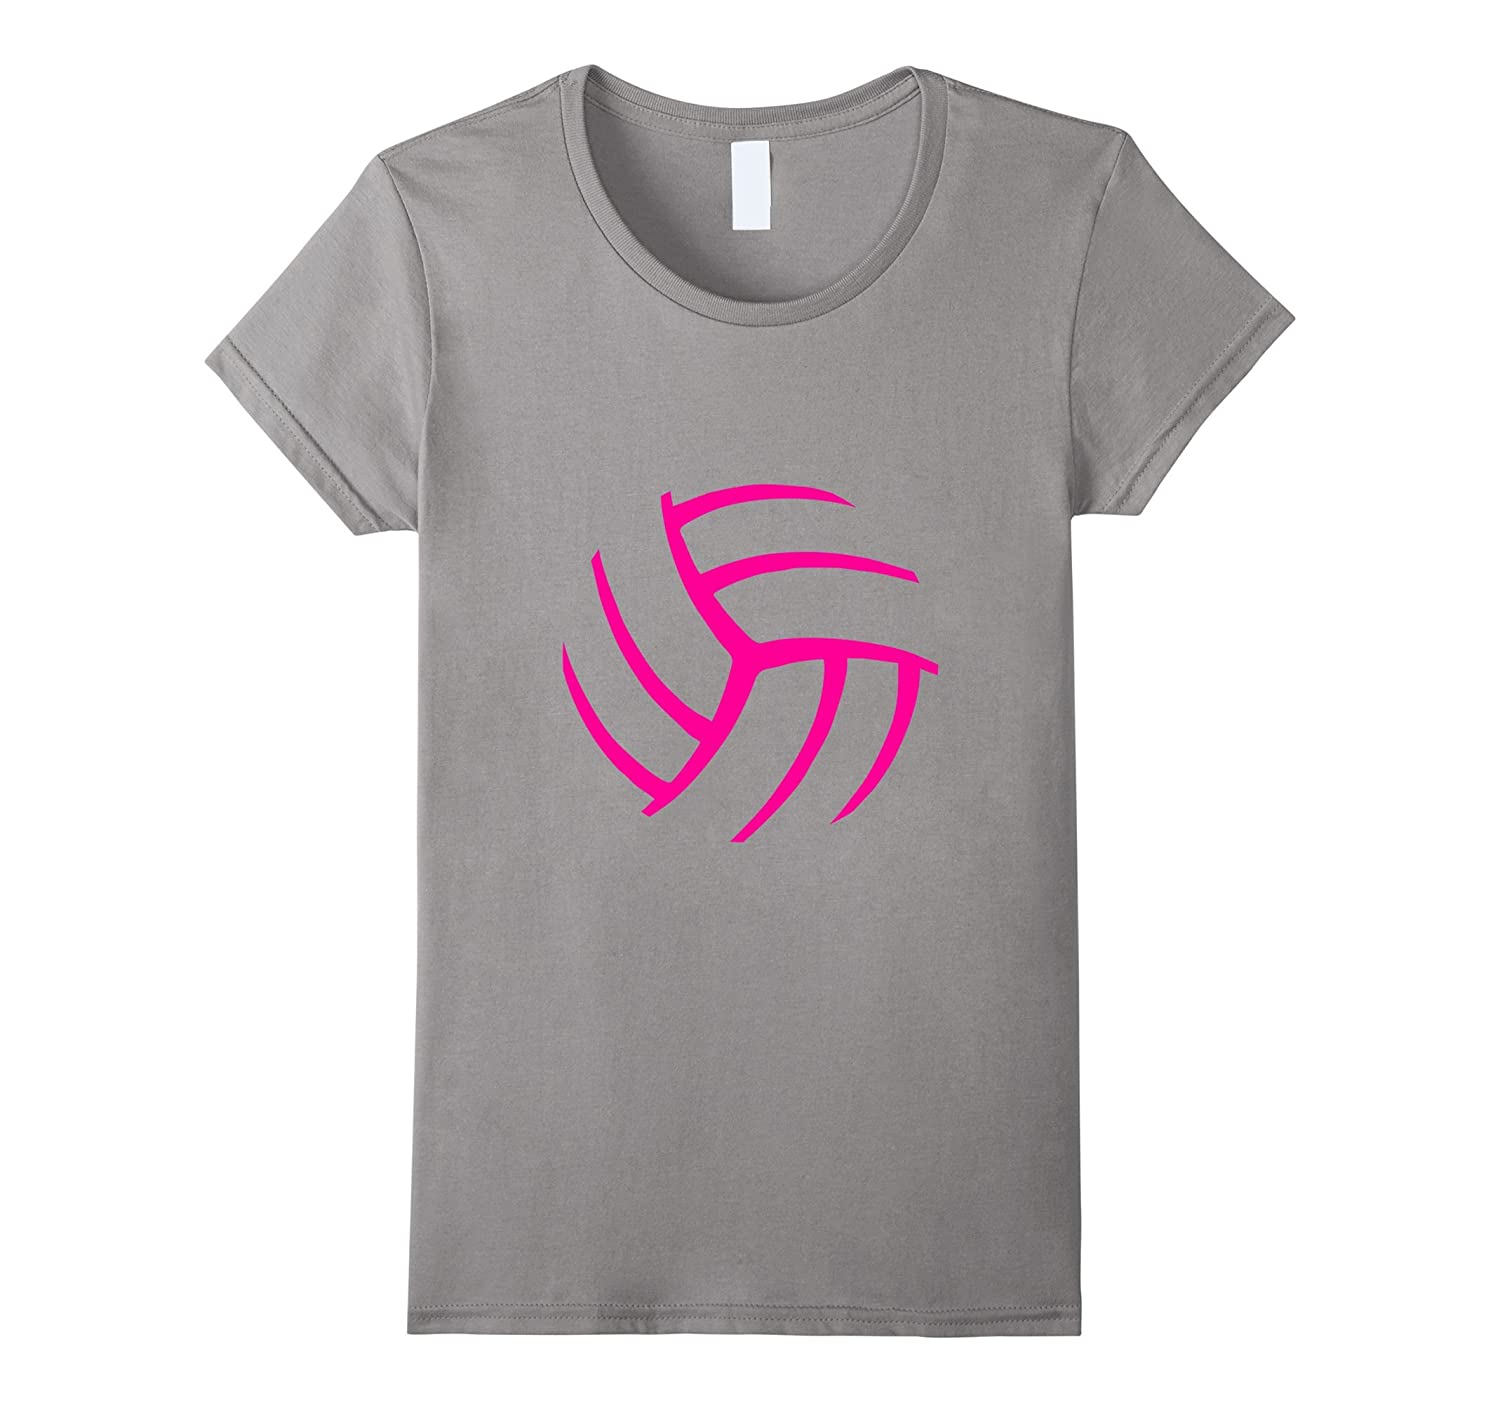 Women Volleyball Apparel - Graphic design t-shirt for girls-Rose